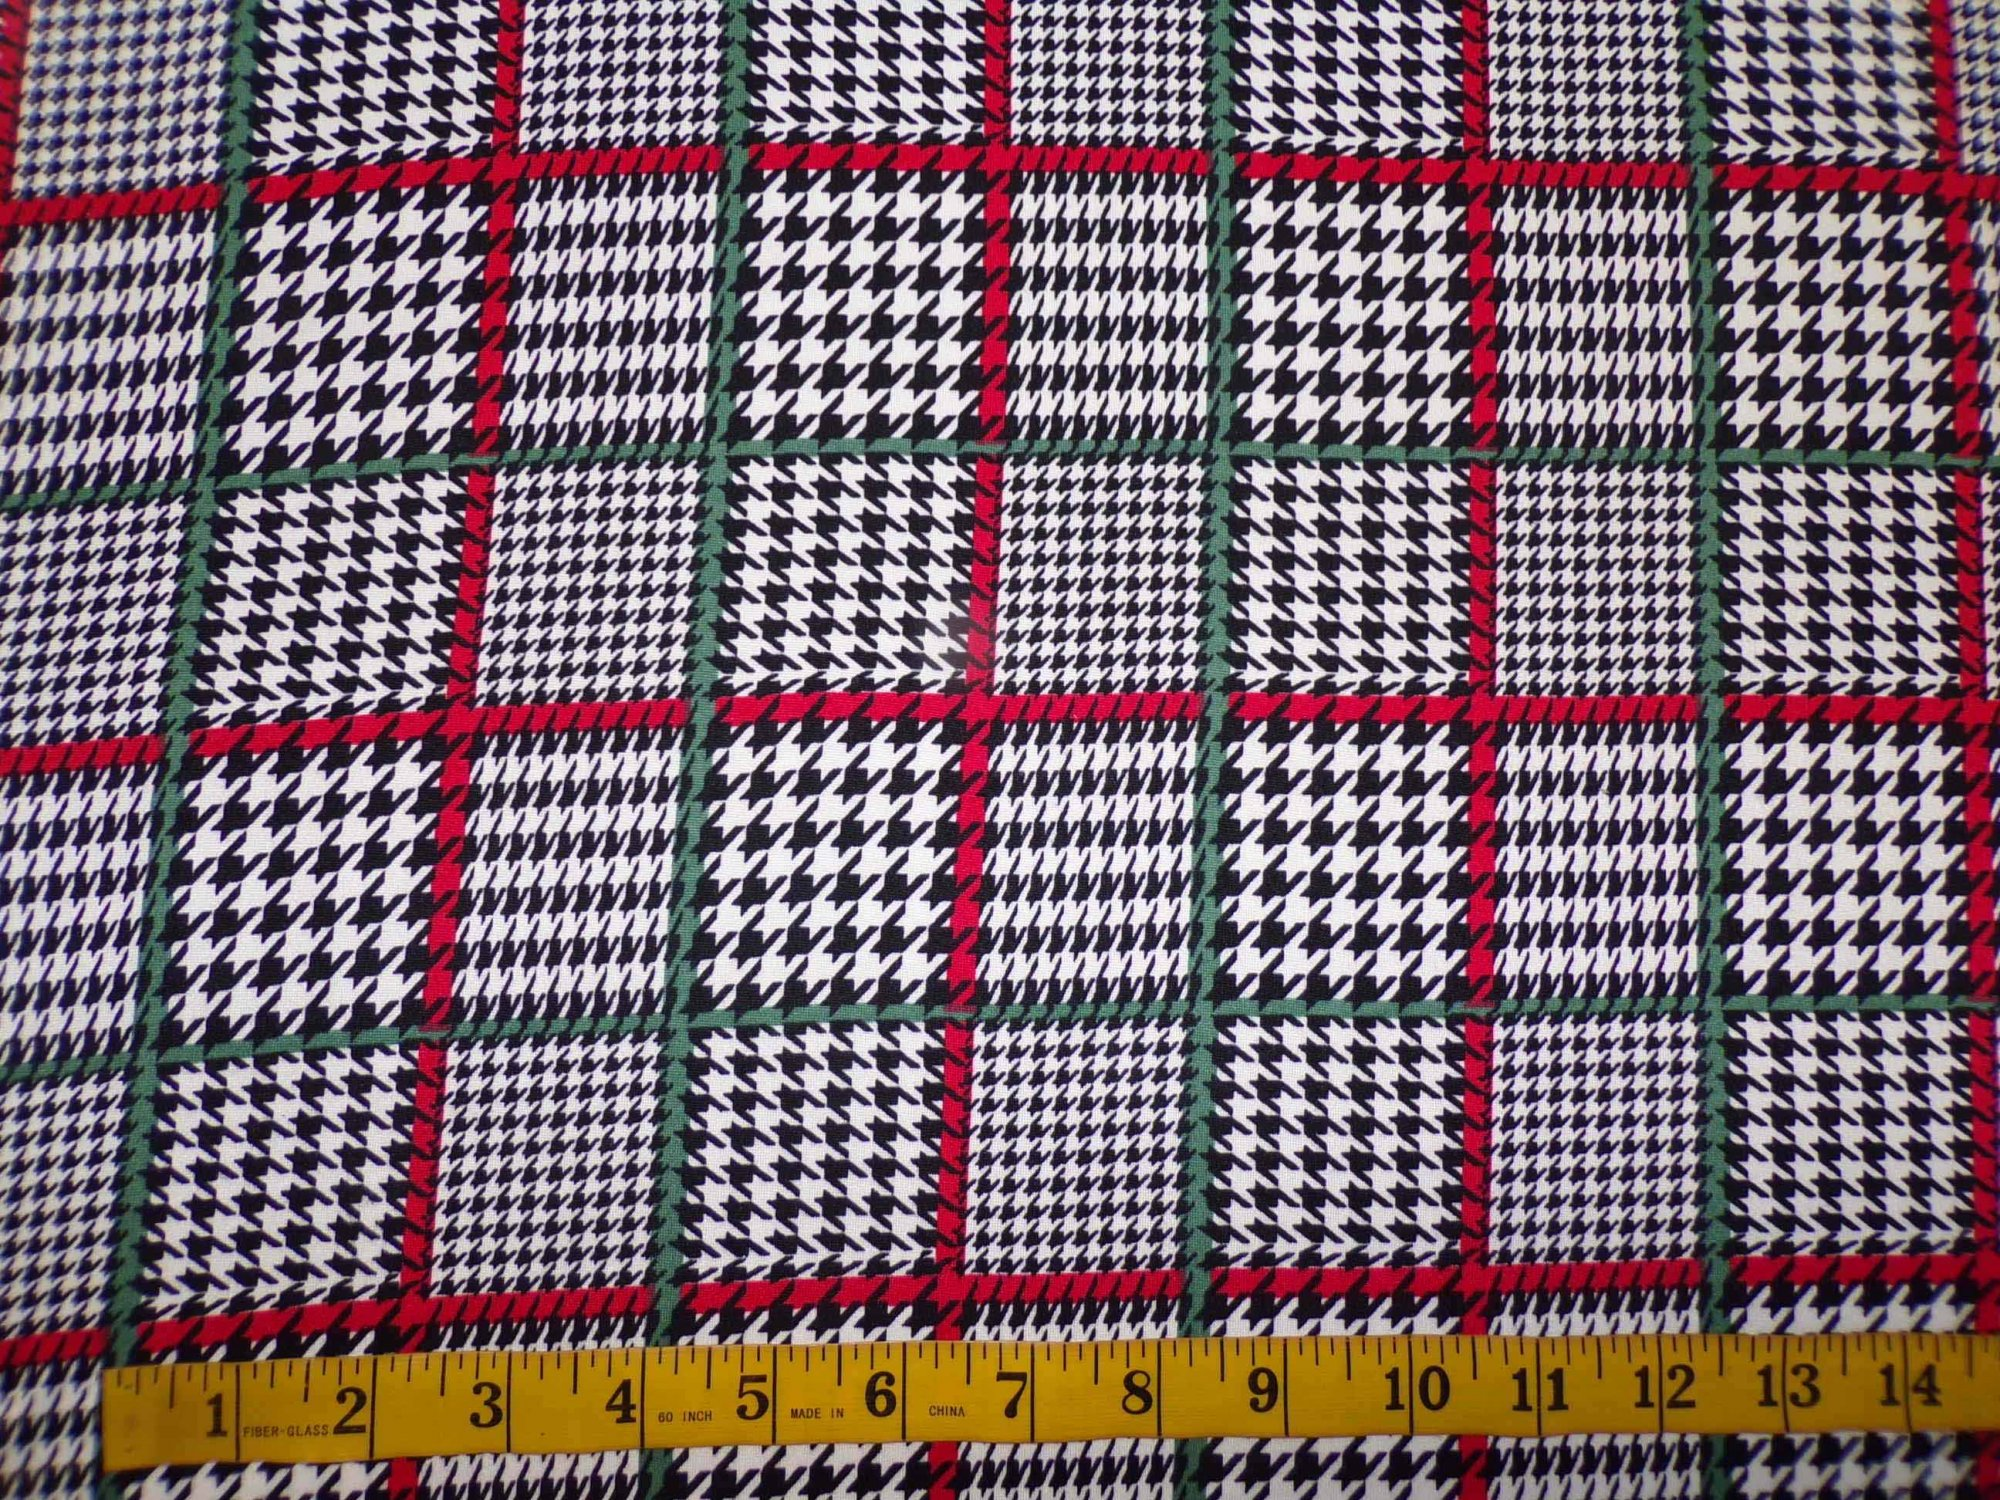 Milana (DBP) - Houndstooth Plaid with Red and Green